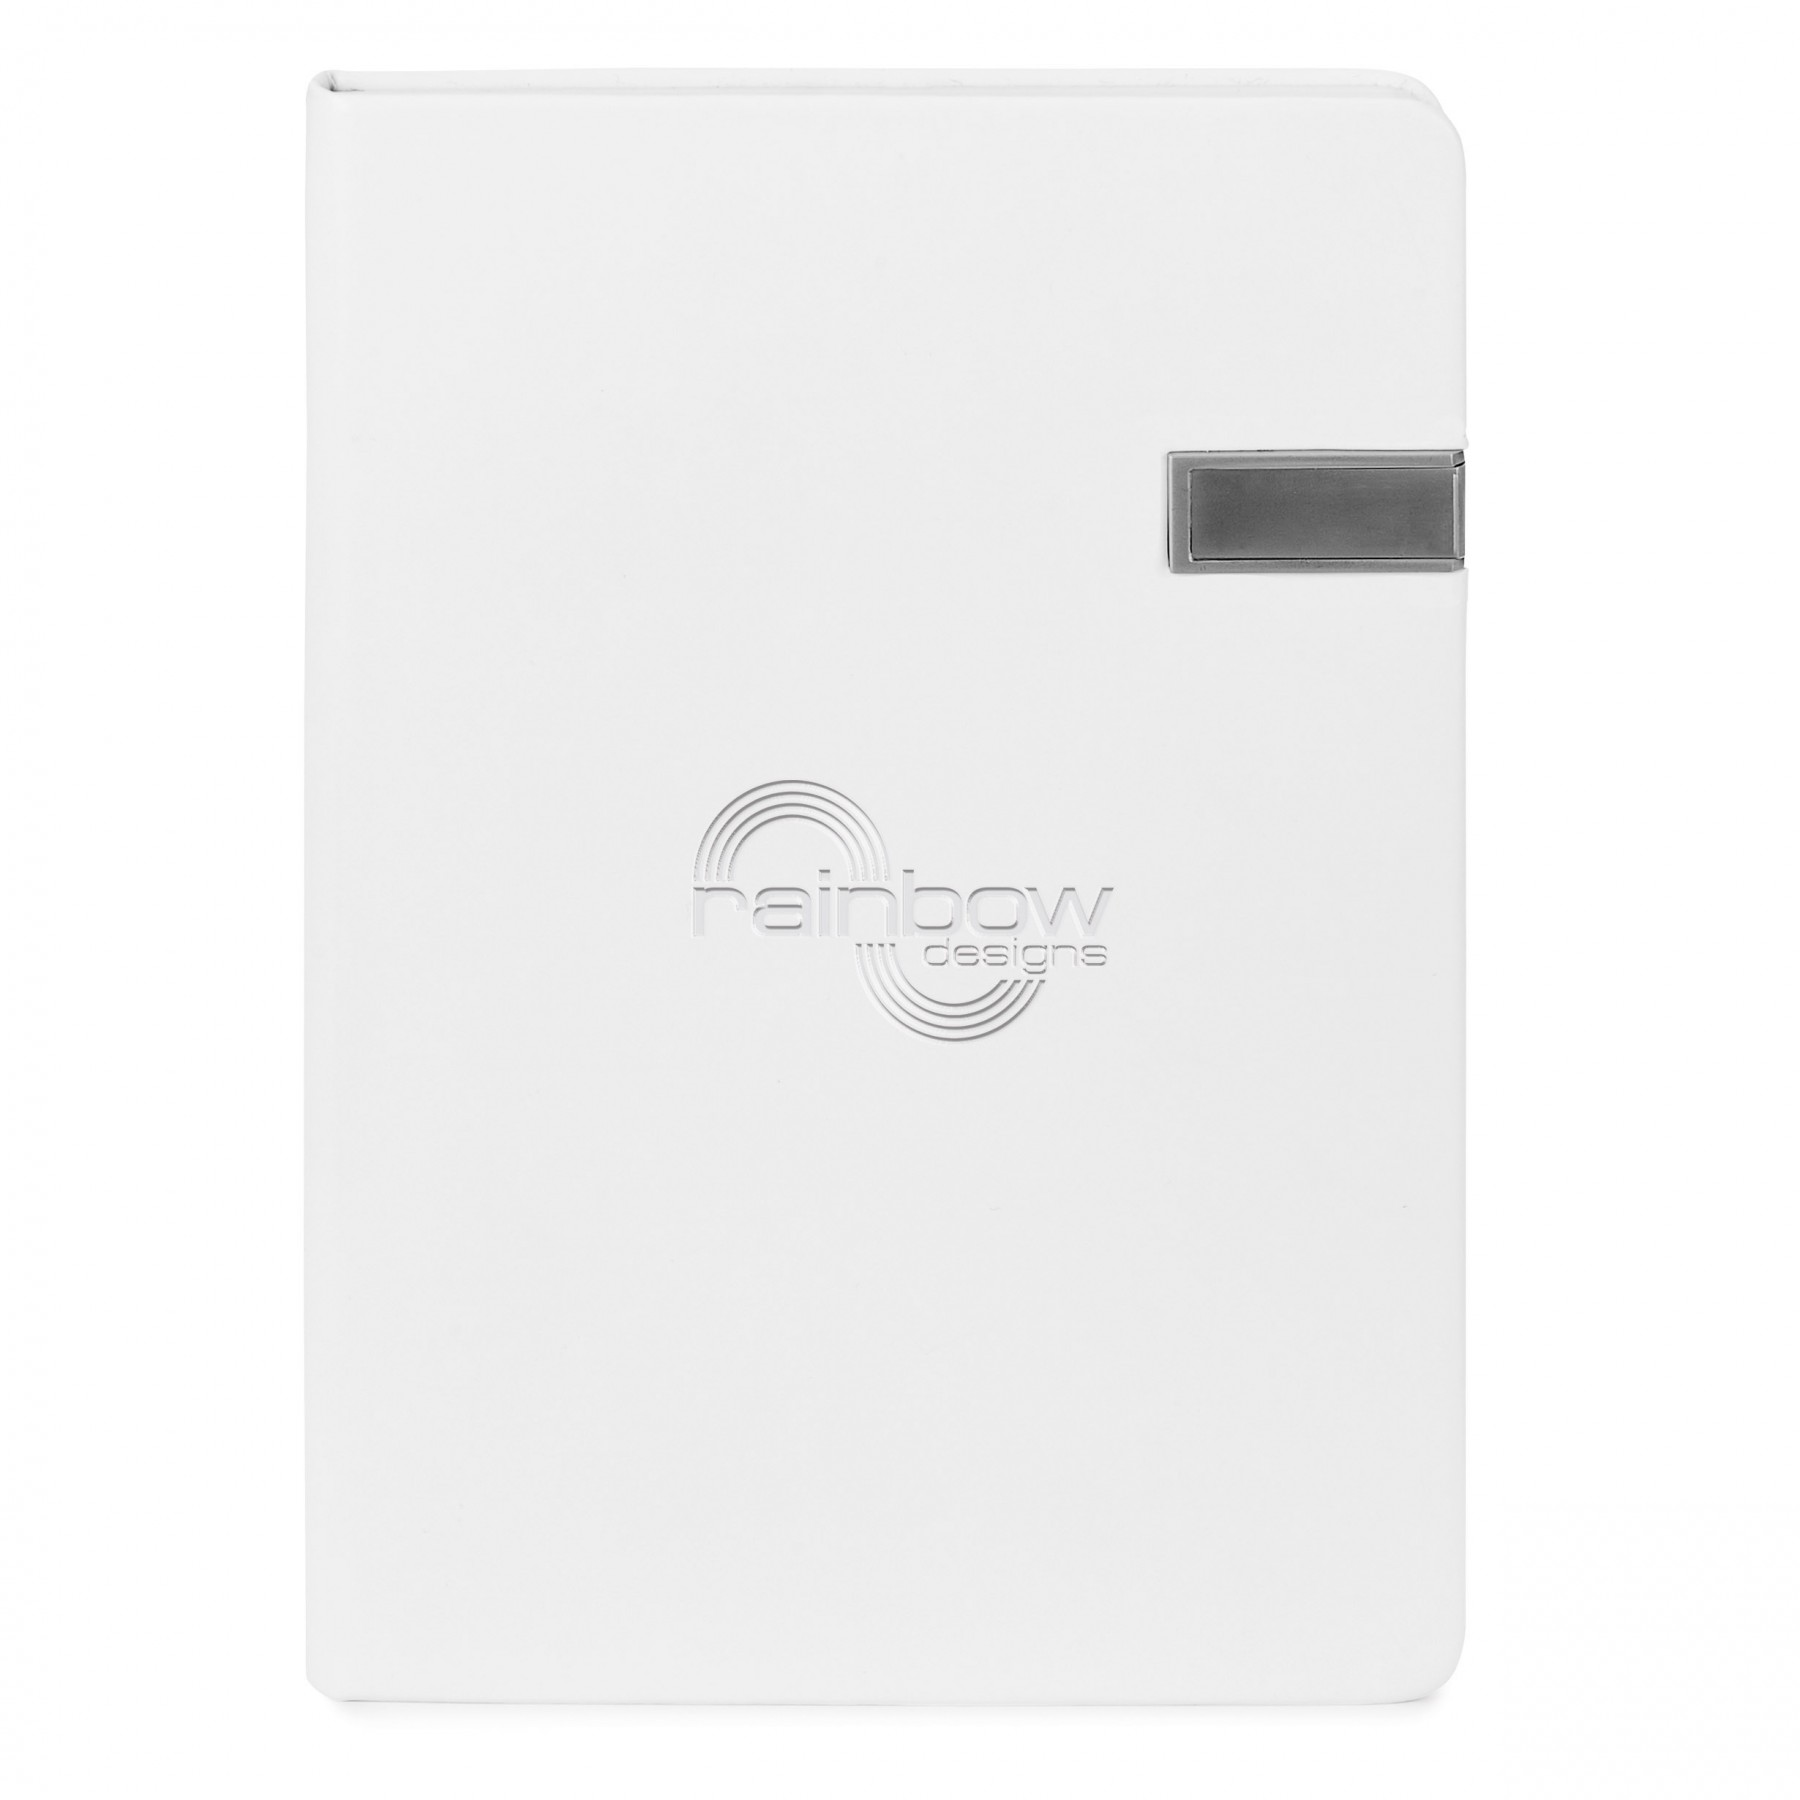 Clark 4 Gb USB Journal, ST4384, Debossed Logo